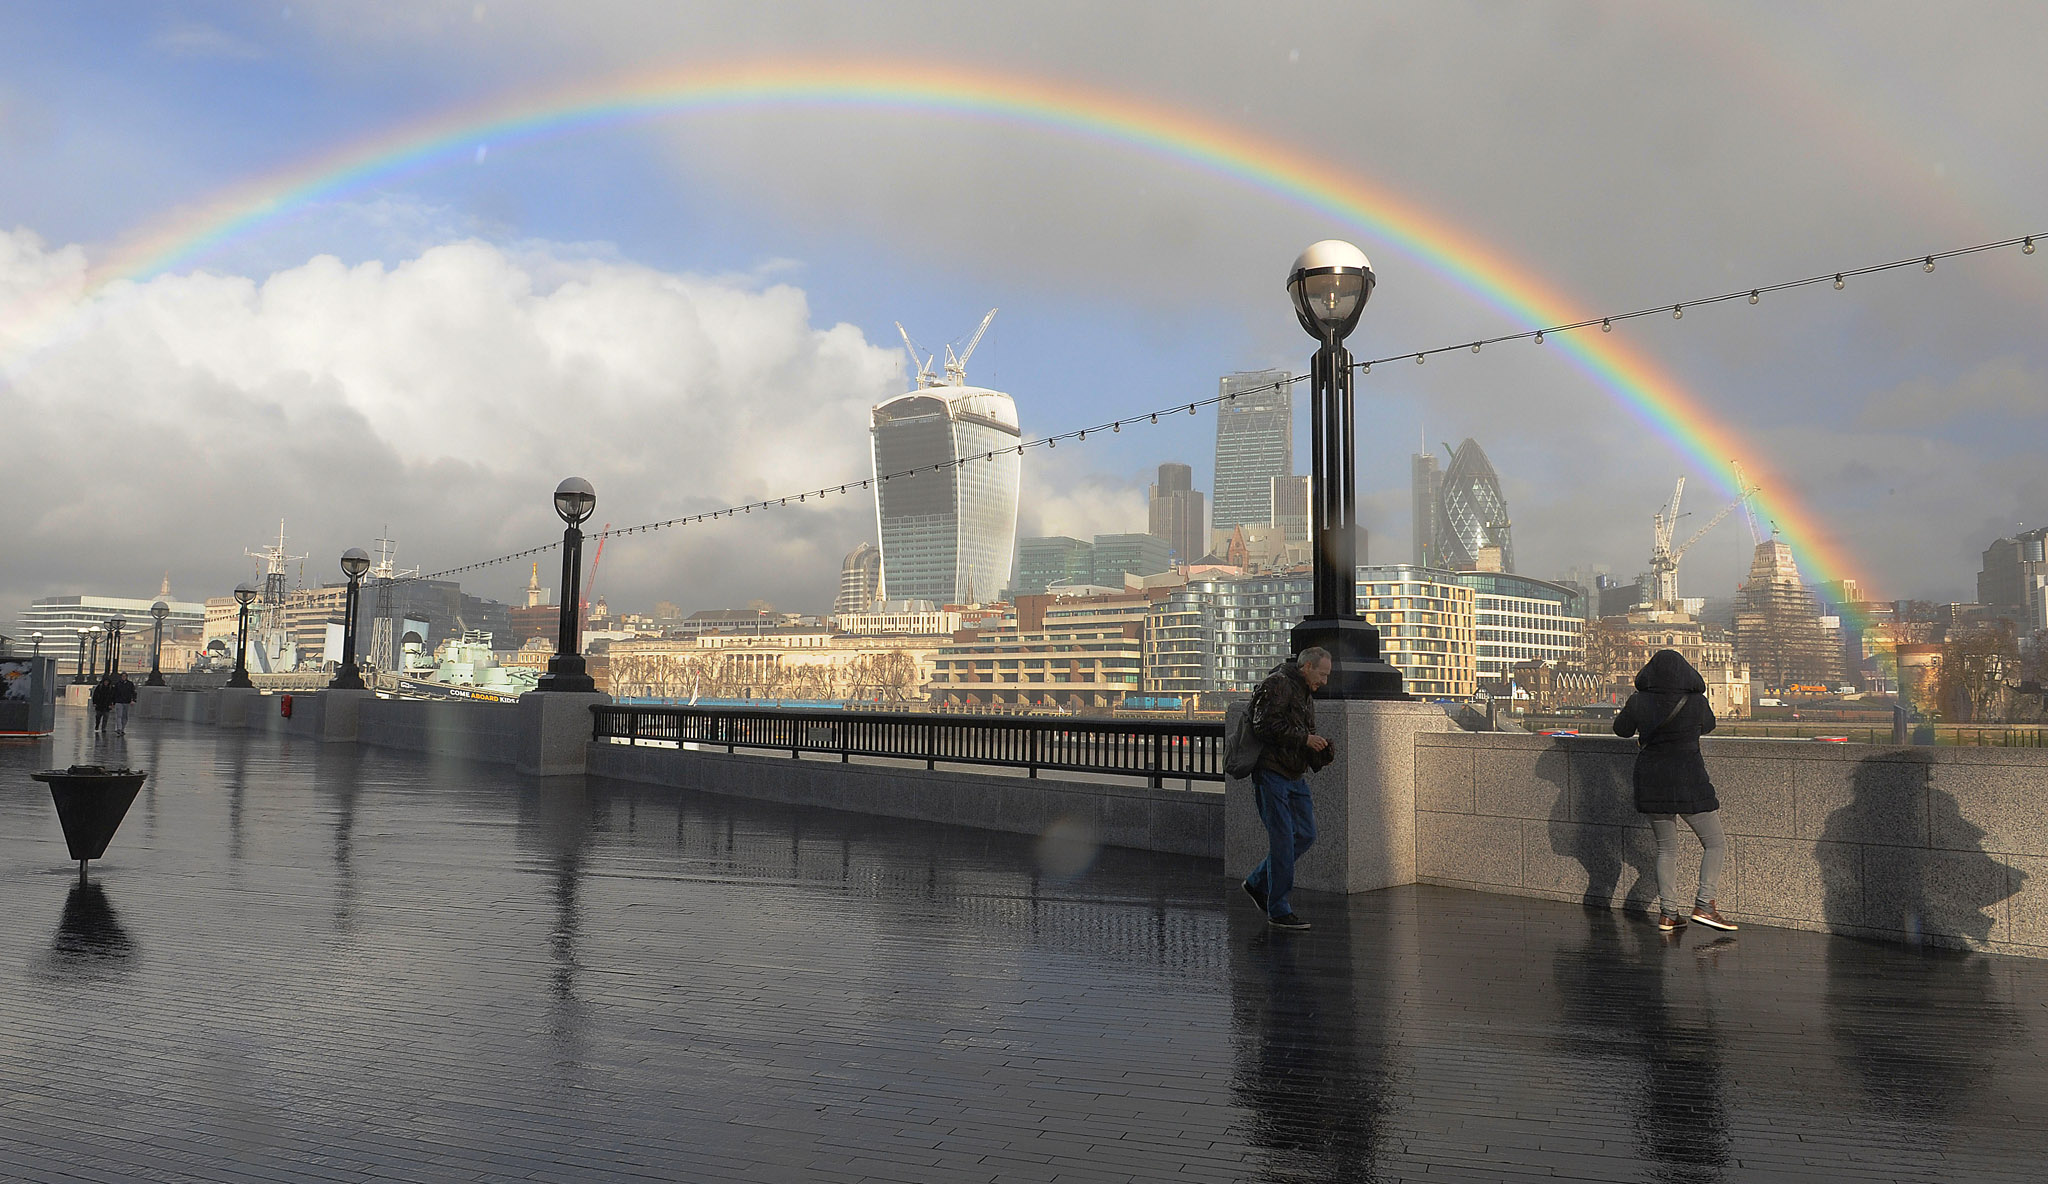 Winter weather Feb 4th...People walk along the Southbank as a rainbow appears over the city of London. PRESS ASSOCIATION Photo. Picture date: Tuesday February 4, 2014.